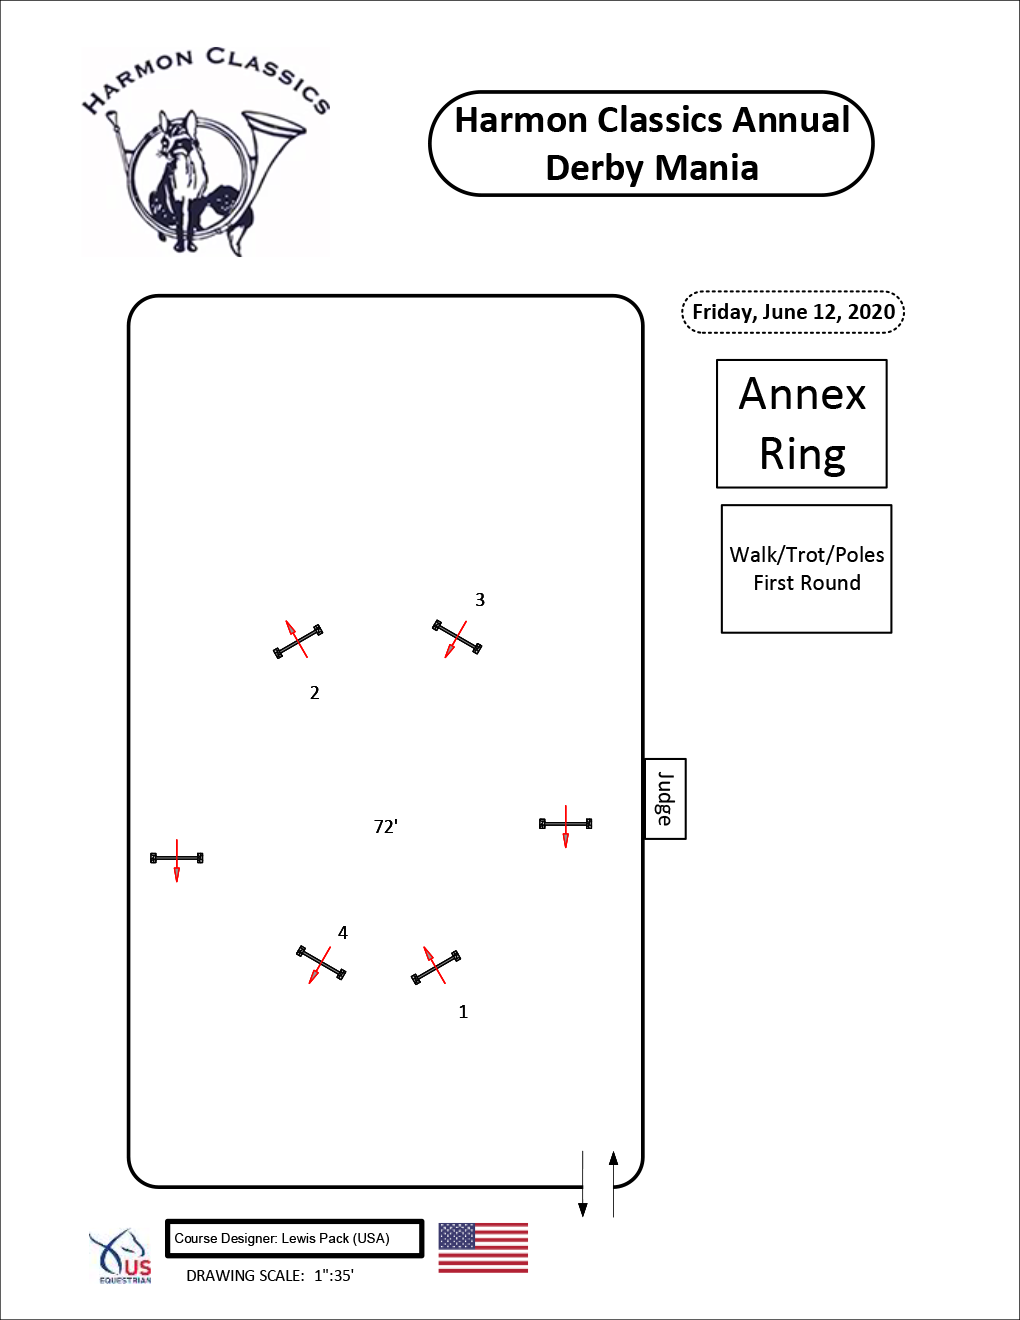 Annex-Ring-Friday6-12-Walk-Trot-Poles-First-Round-Harmon-Classics-Derby-Mania